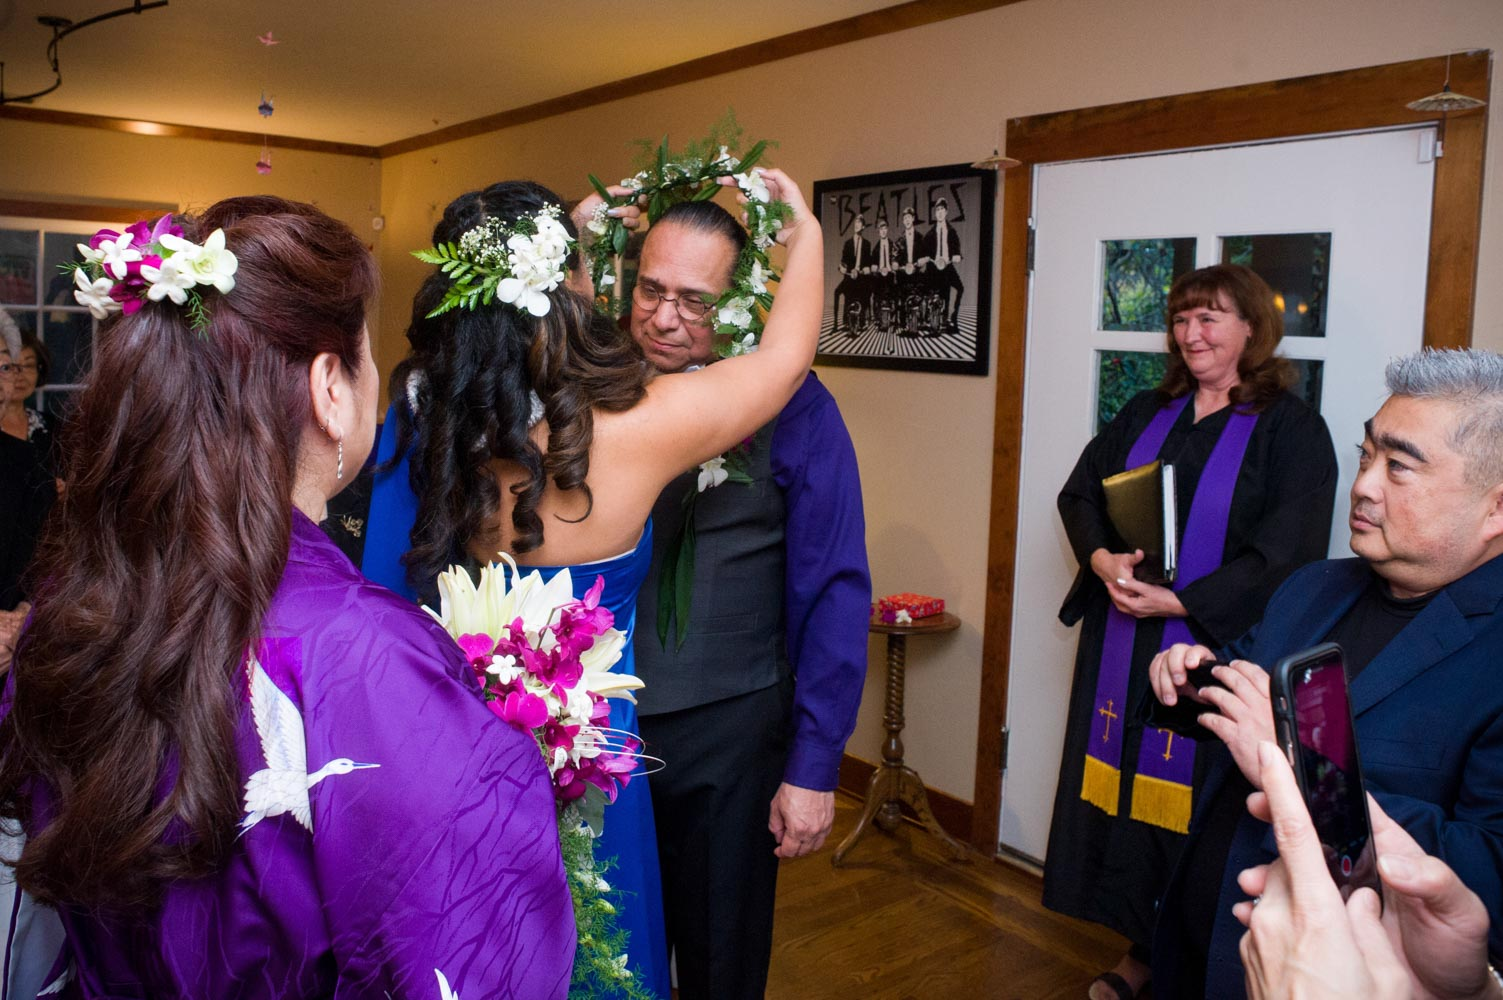 Girl places lei on groom, while wedding officiant watchs